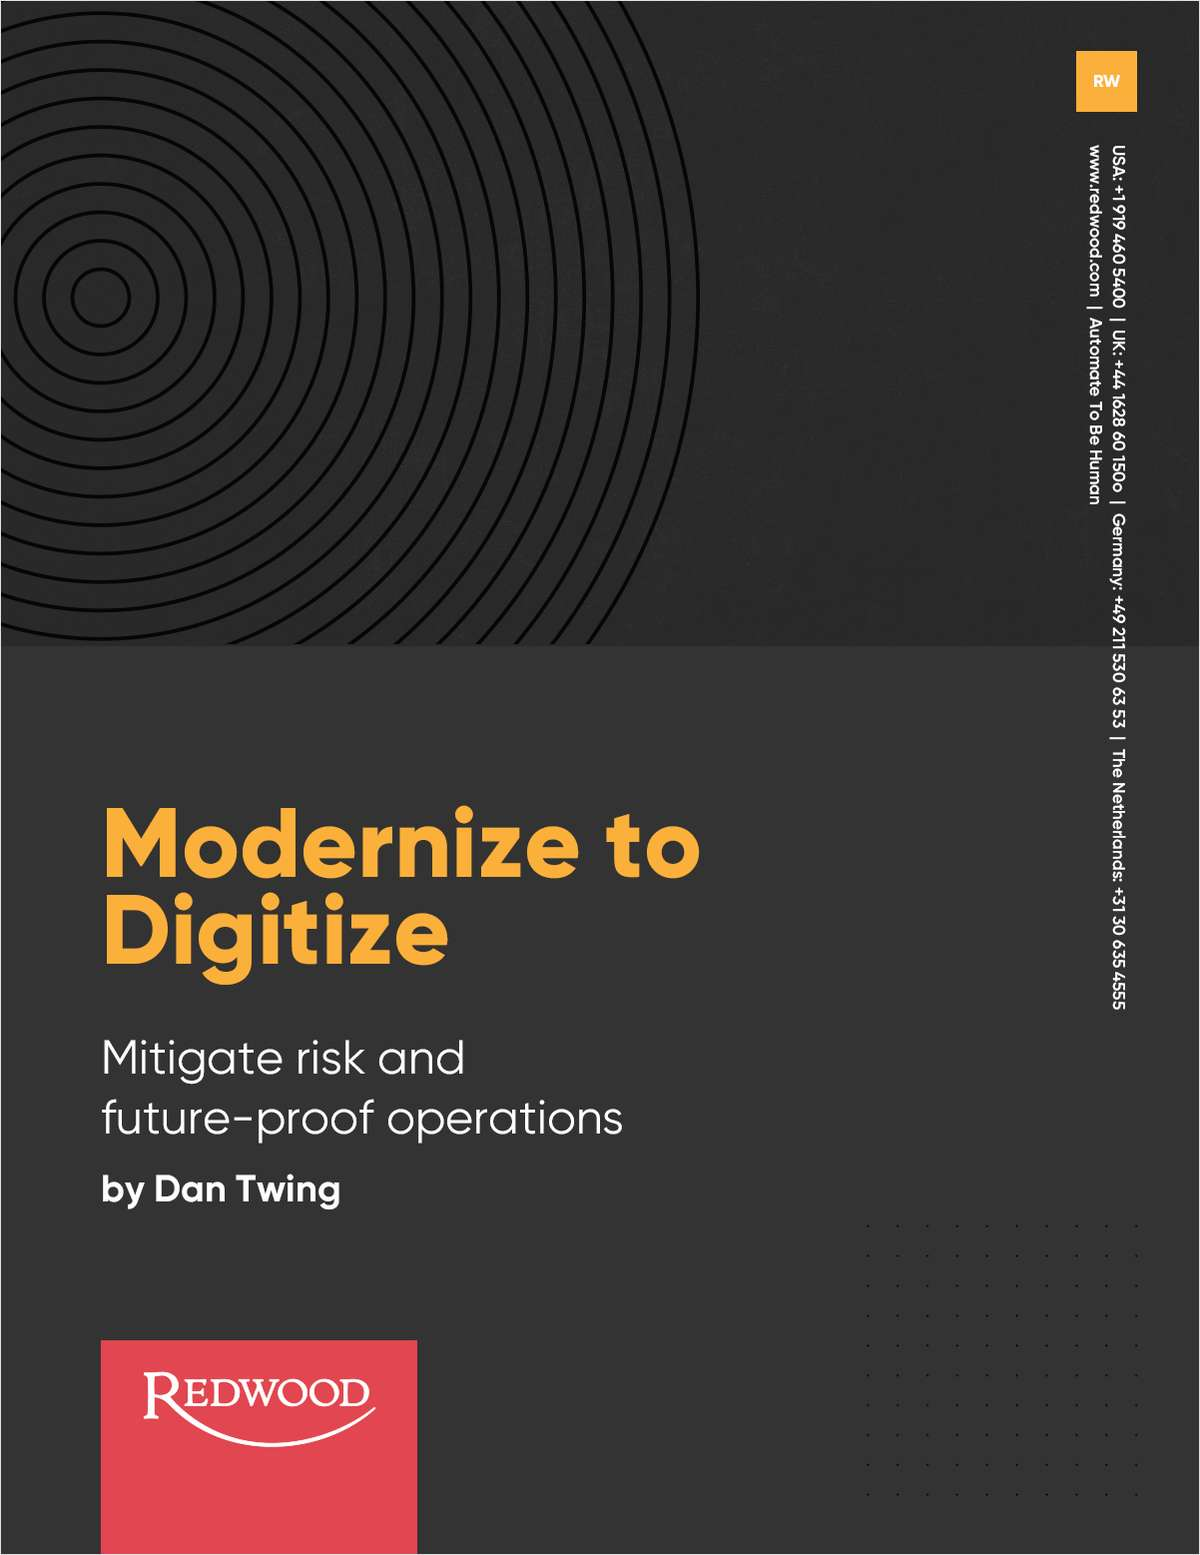 Modernize to Digitize Future-Proof Operations and Mitigate Risk